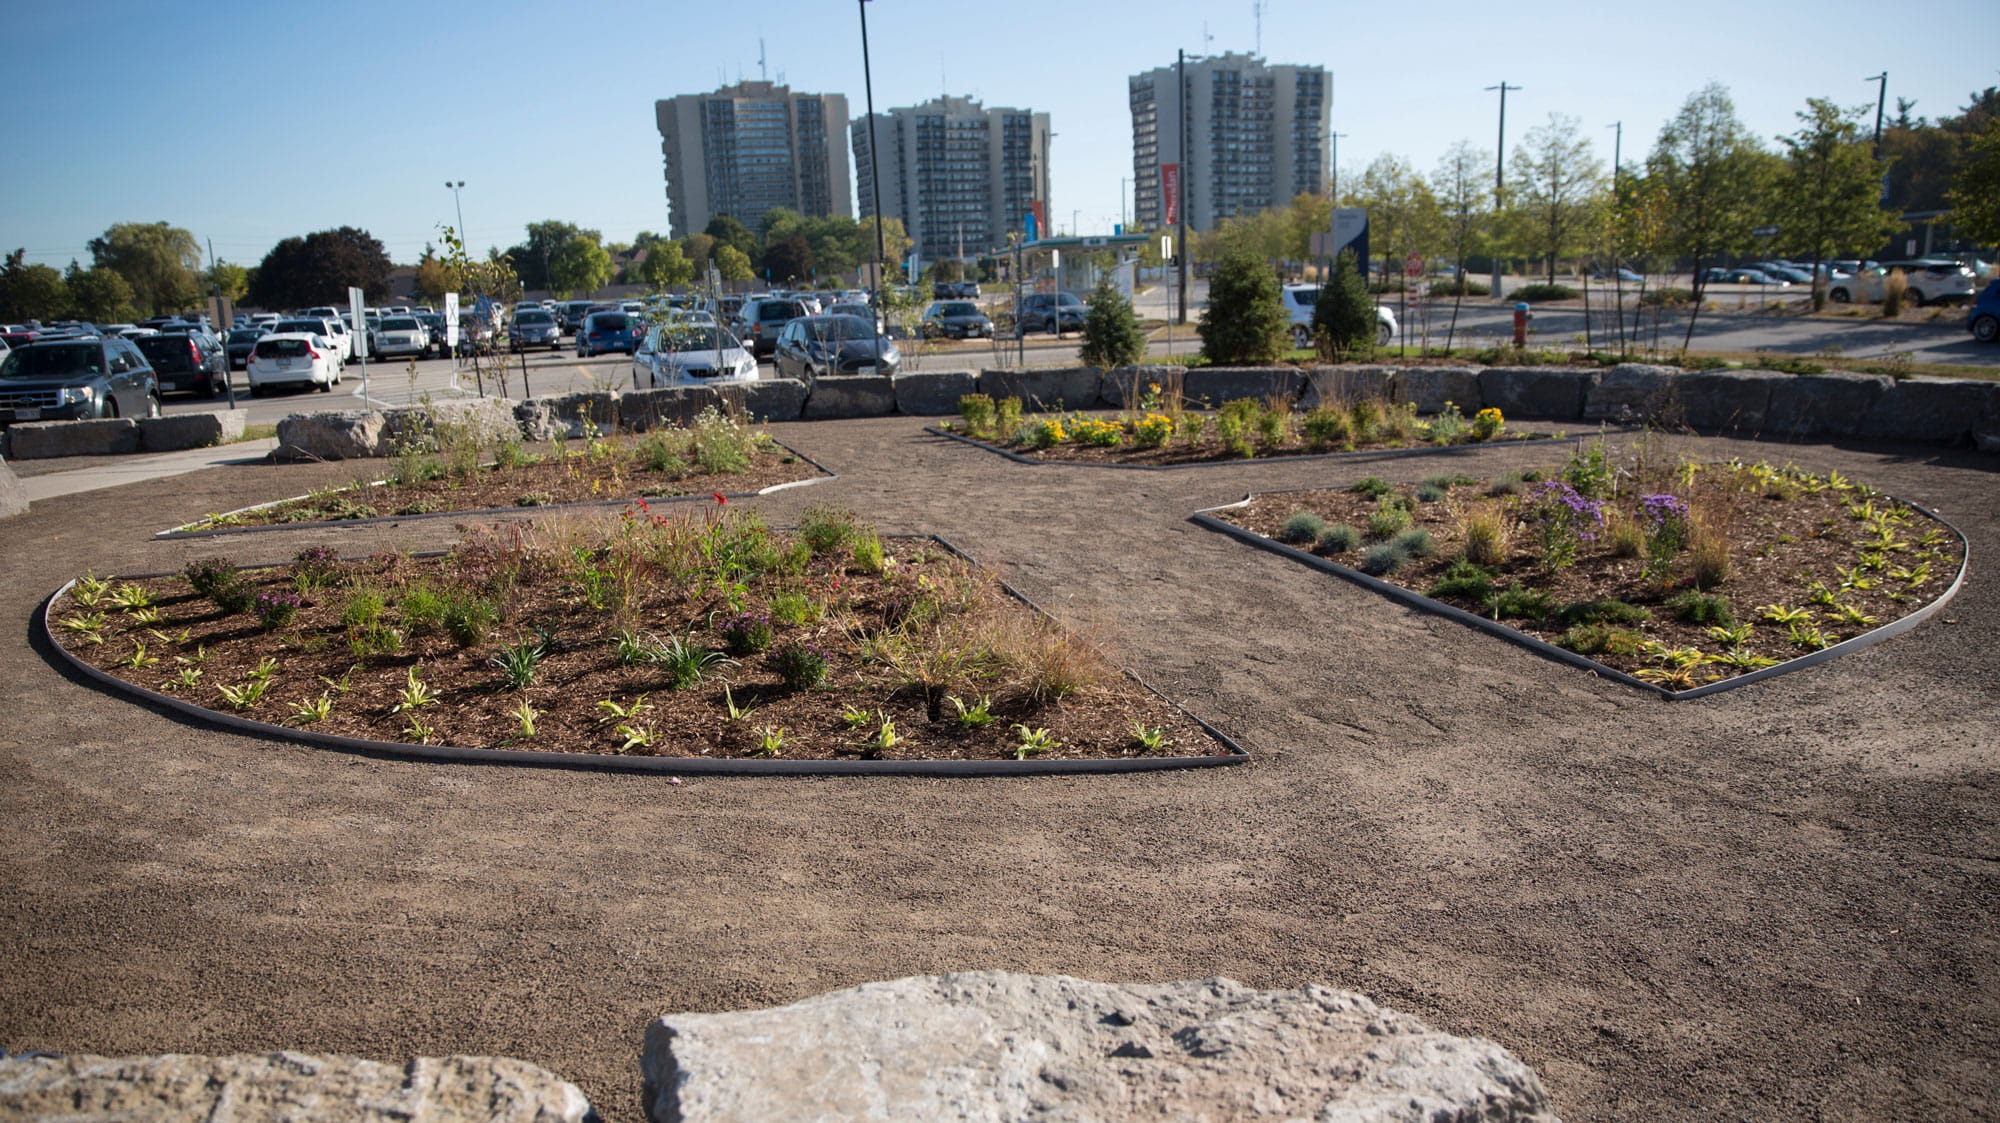 The Medicine Wheel Garden at Sheridan's Trafalgar Road Campus